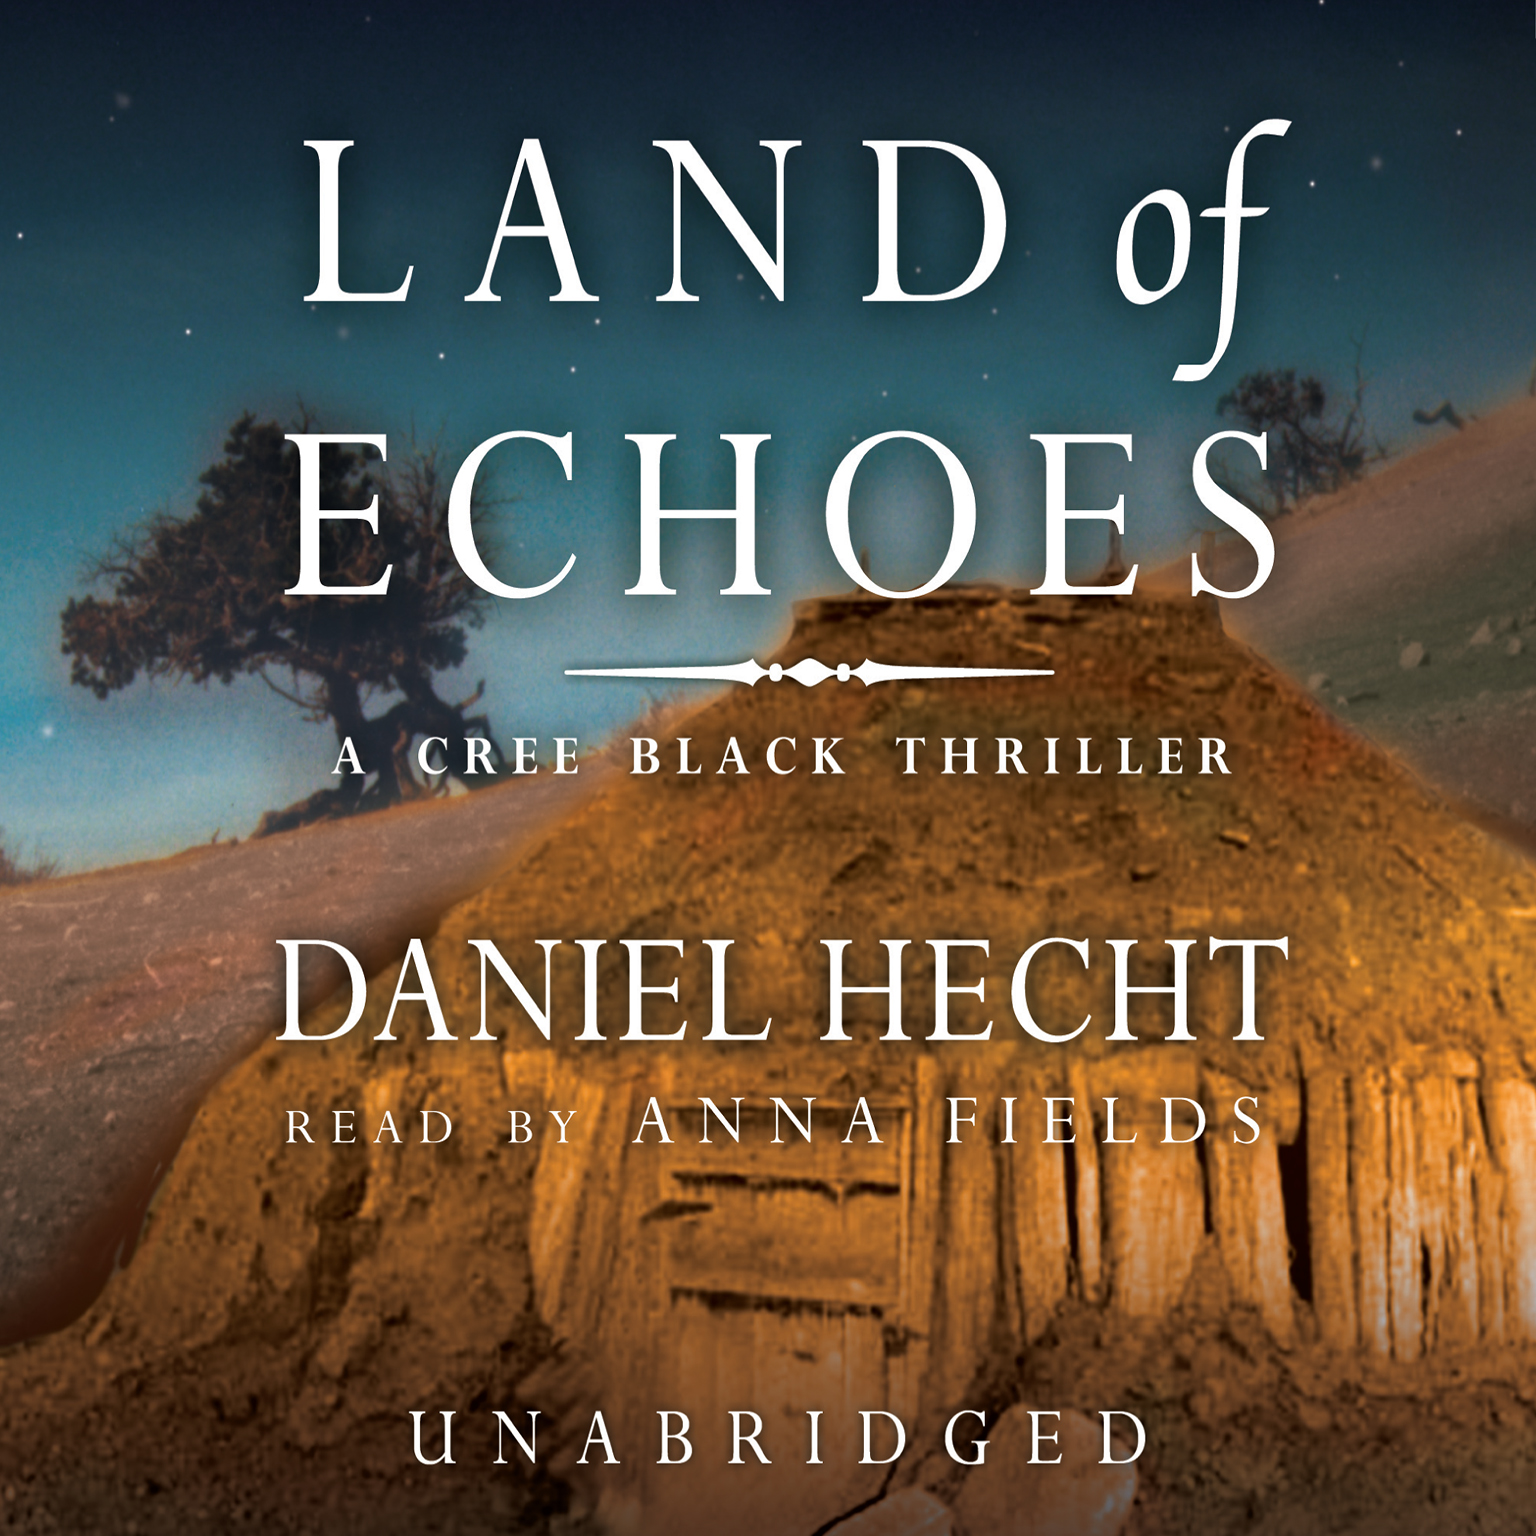 Printable Land of Echoes: A Cree Black Thriller Audiobook Cover Art